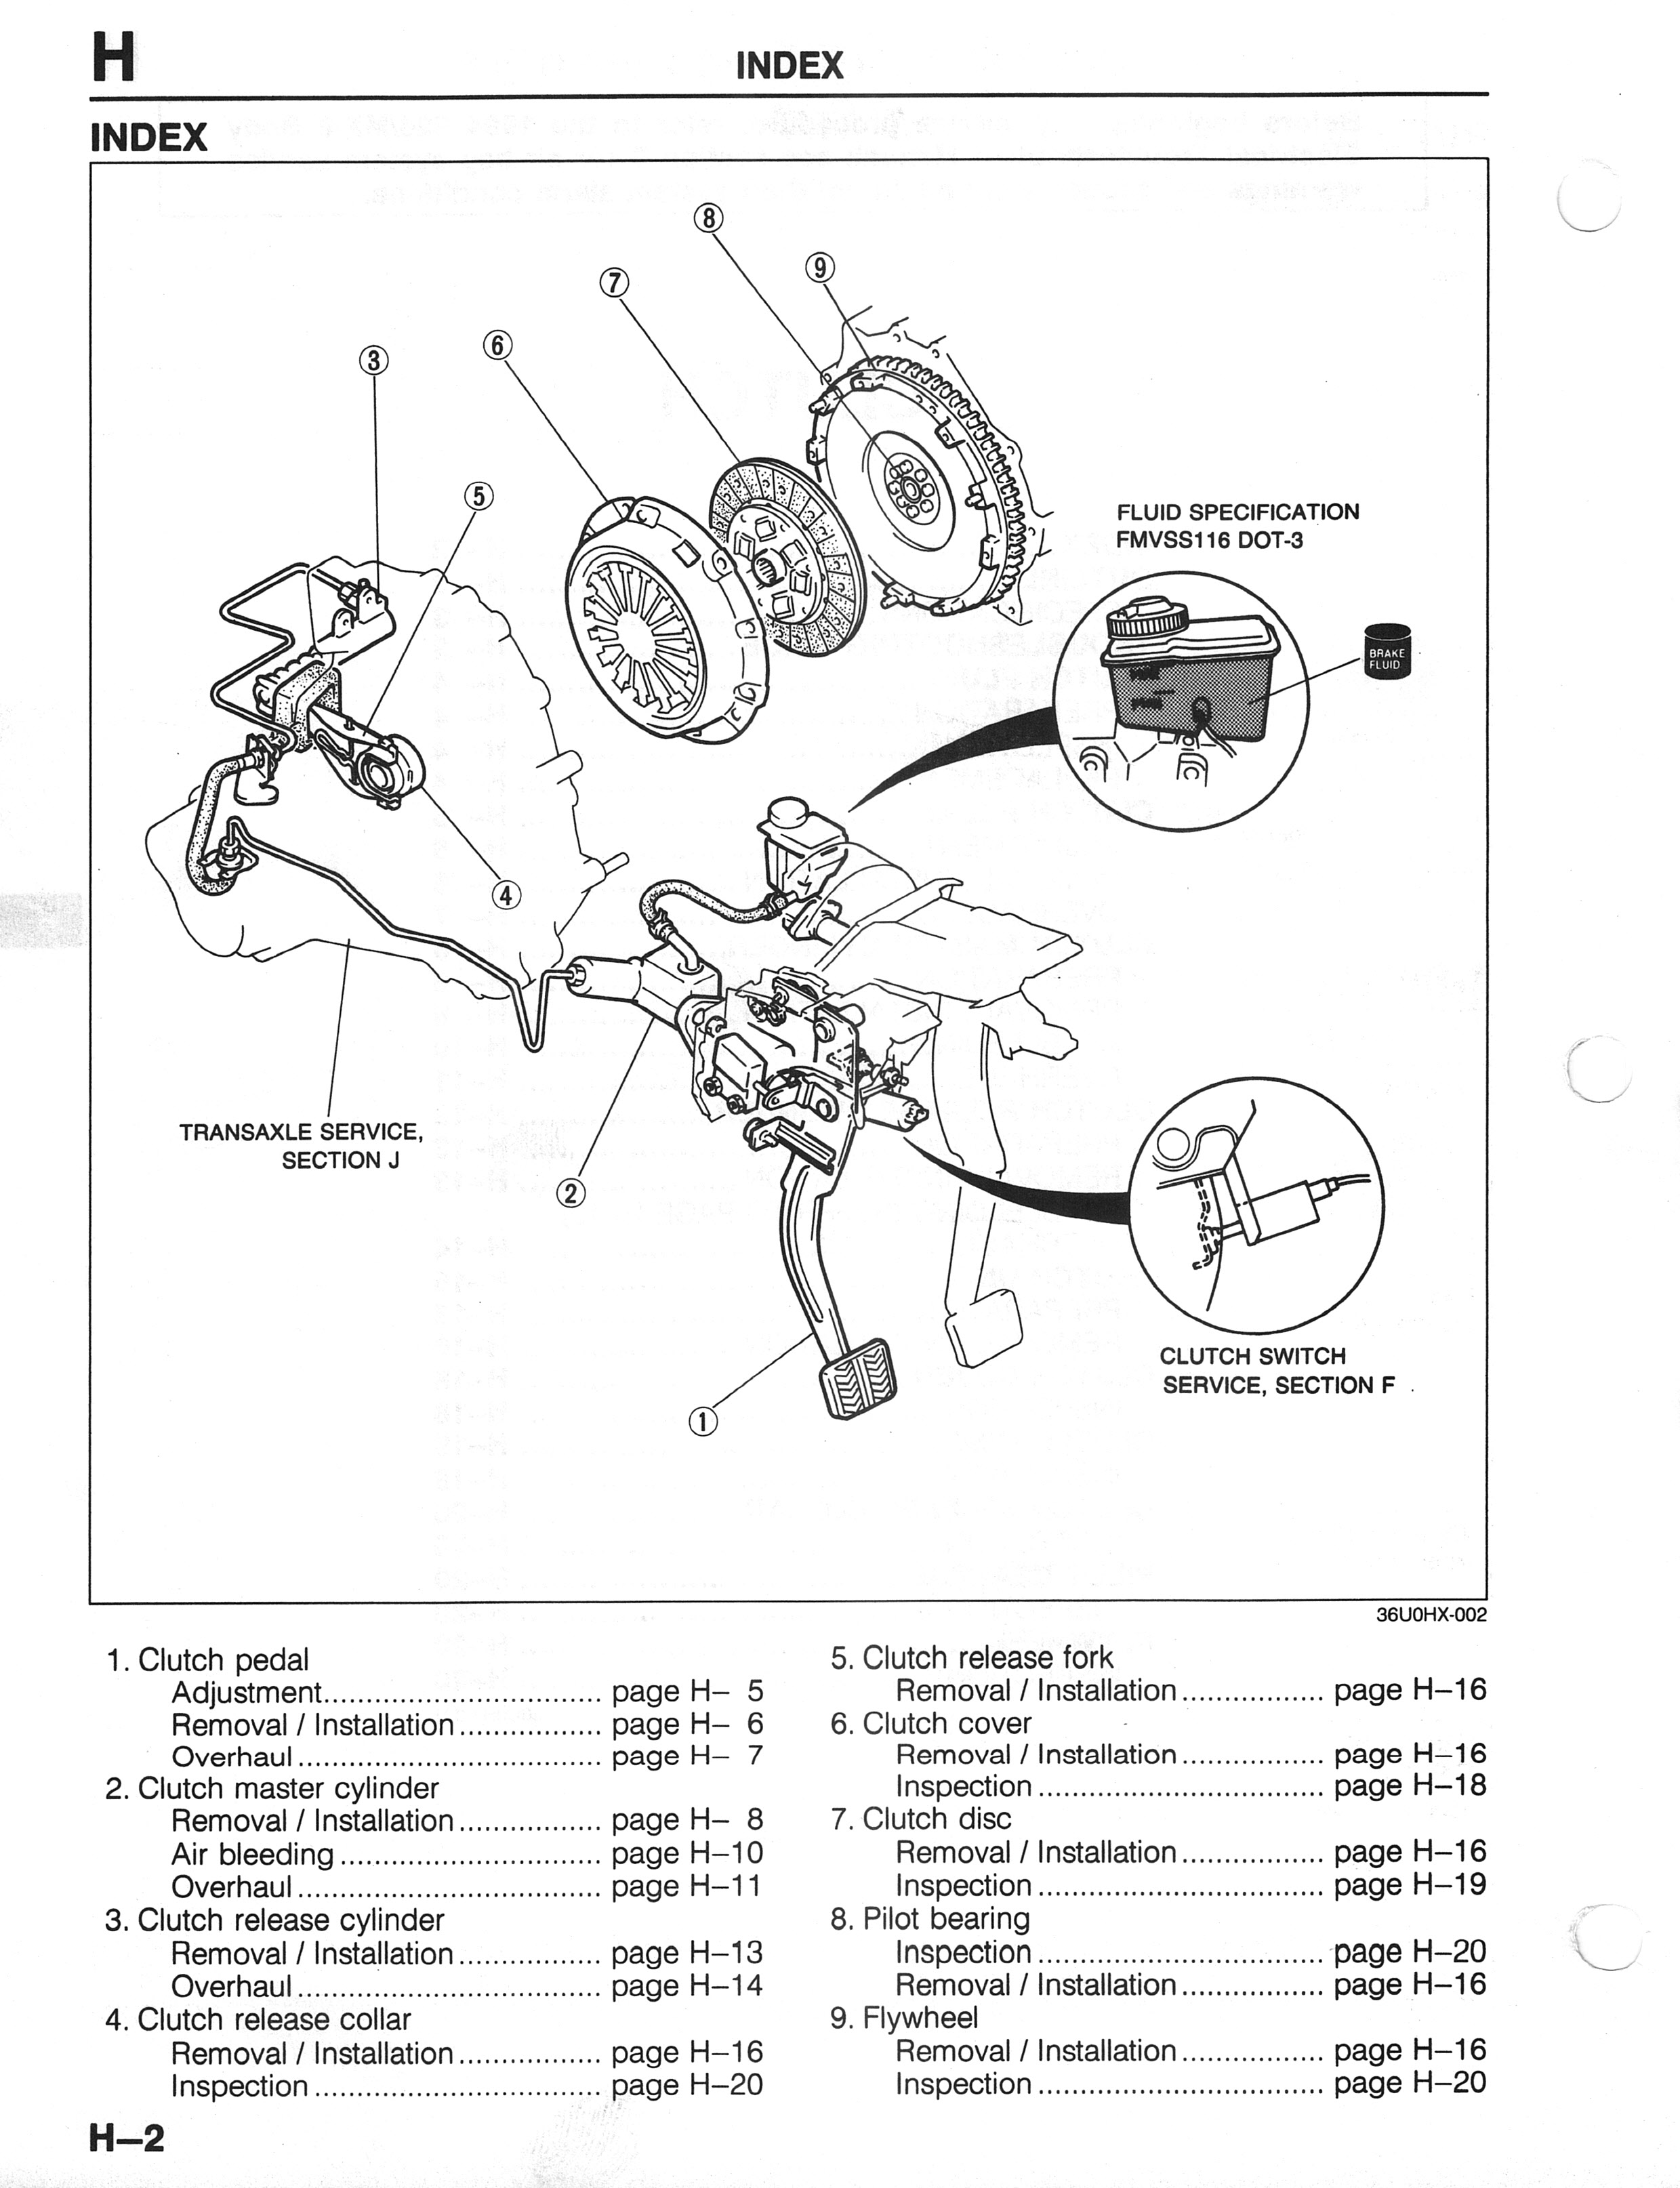 1994 toyota 4runner clutch pedal parts diagram  toyota